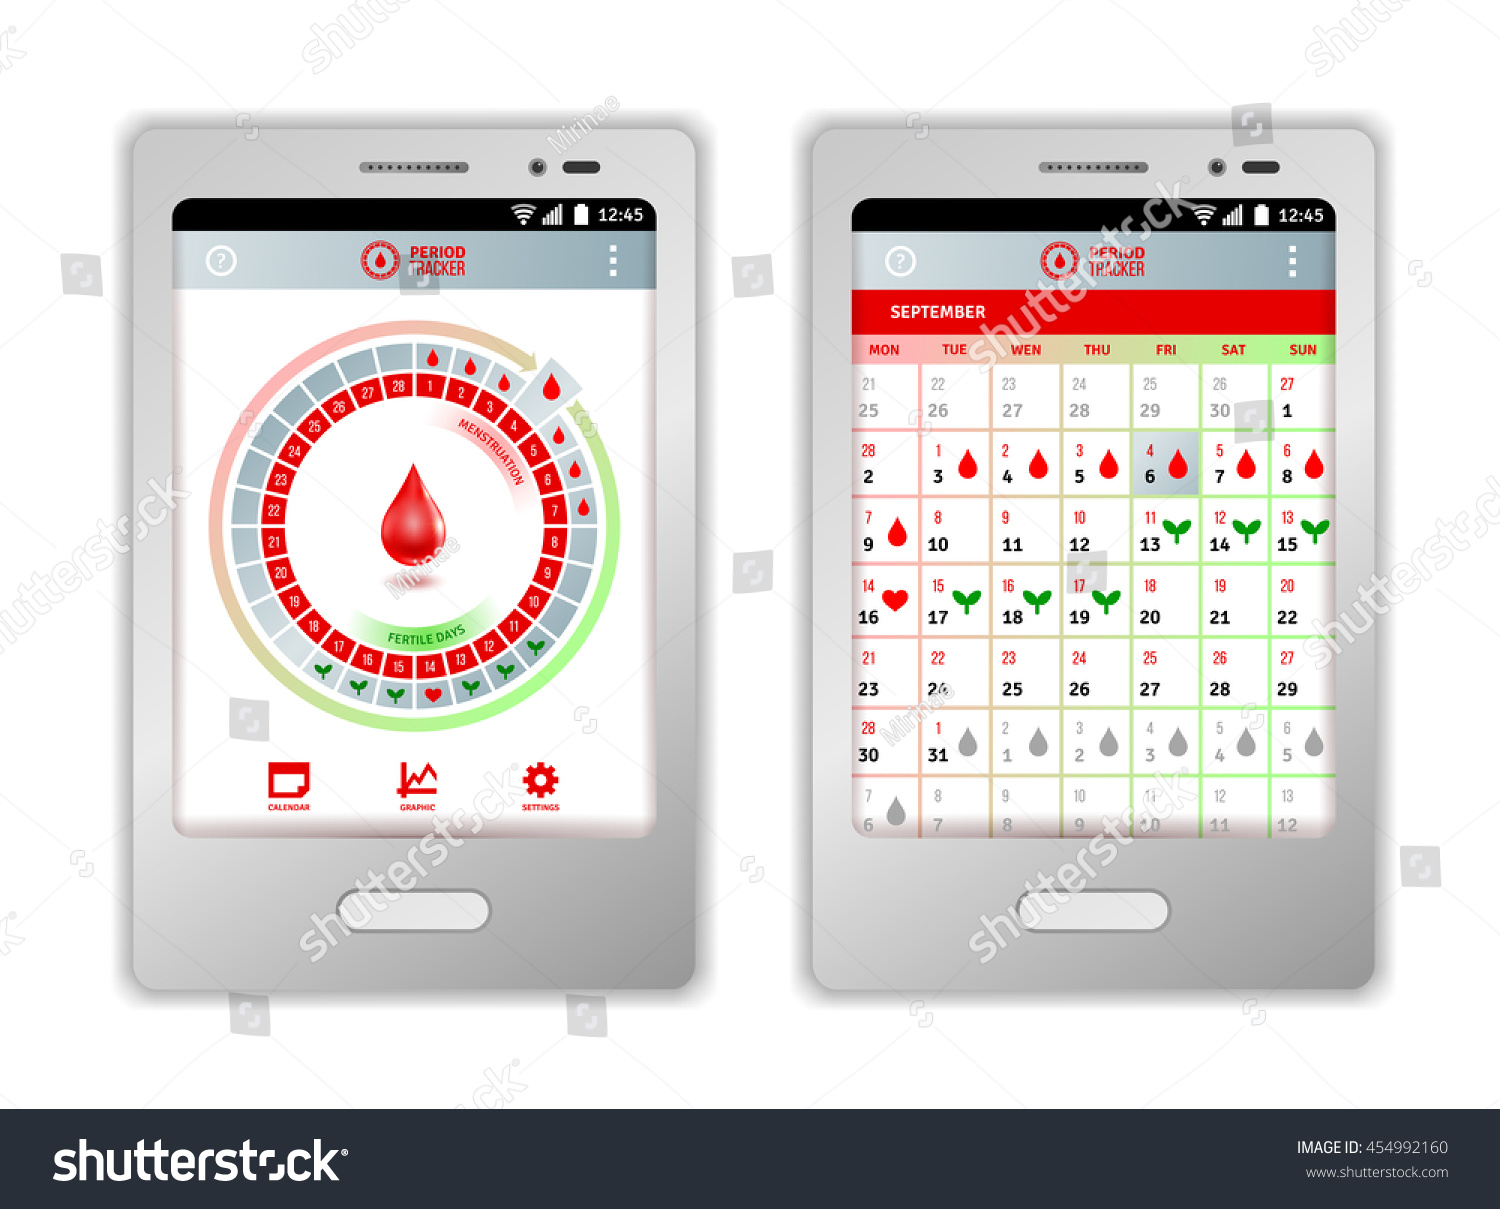 Calendar Design Sia : Period tracker tablet mobile phone application Стоковое